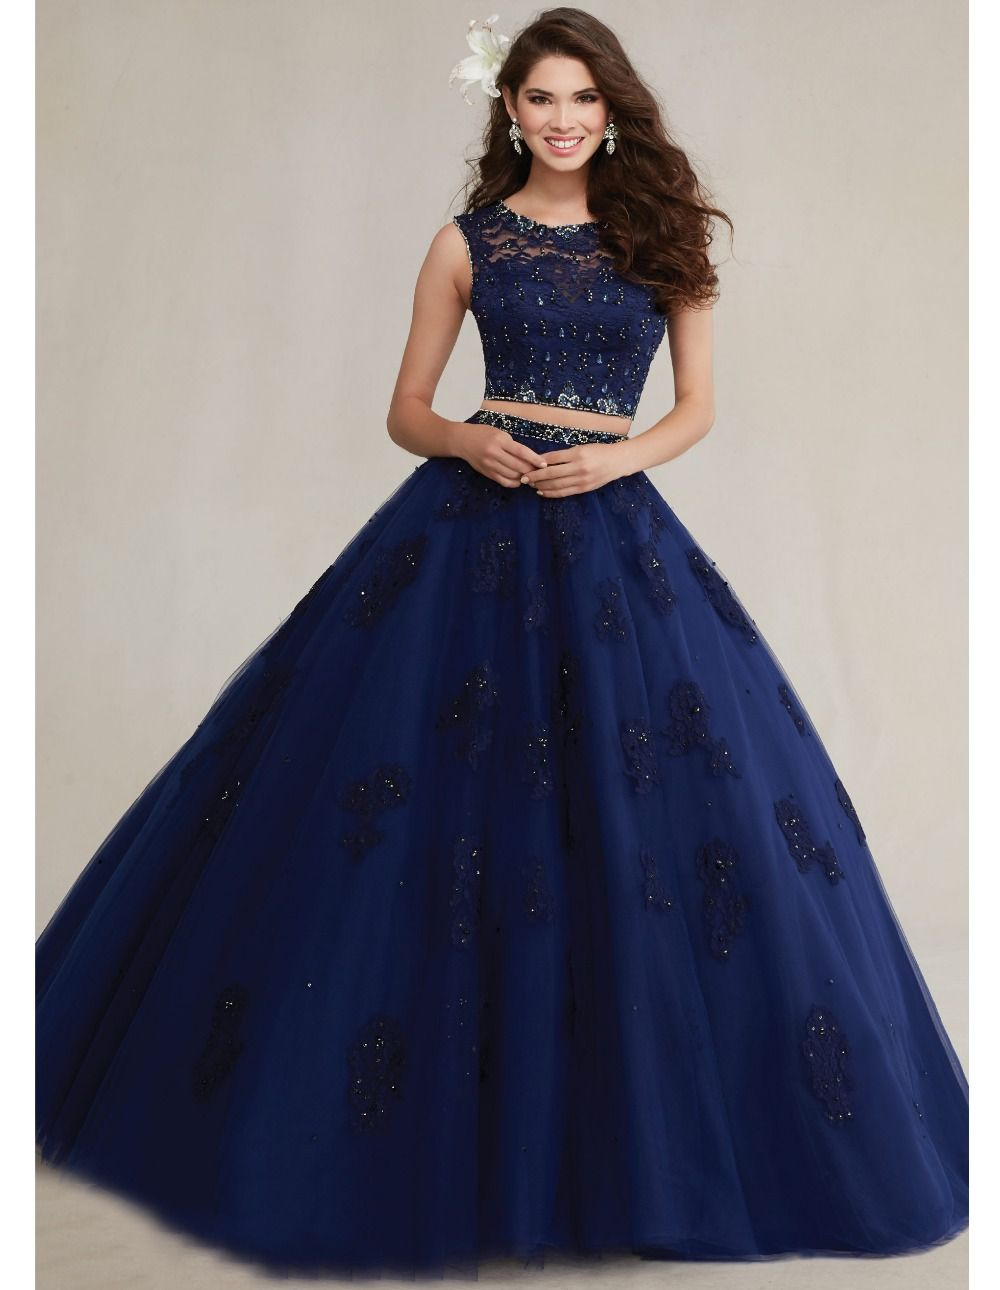 b555bcb259 Royal Blue Sweet 16 Dresses. Royal Blue Sweet 16 Dresses Beaded Lace